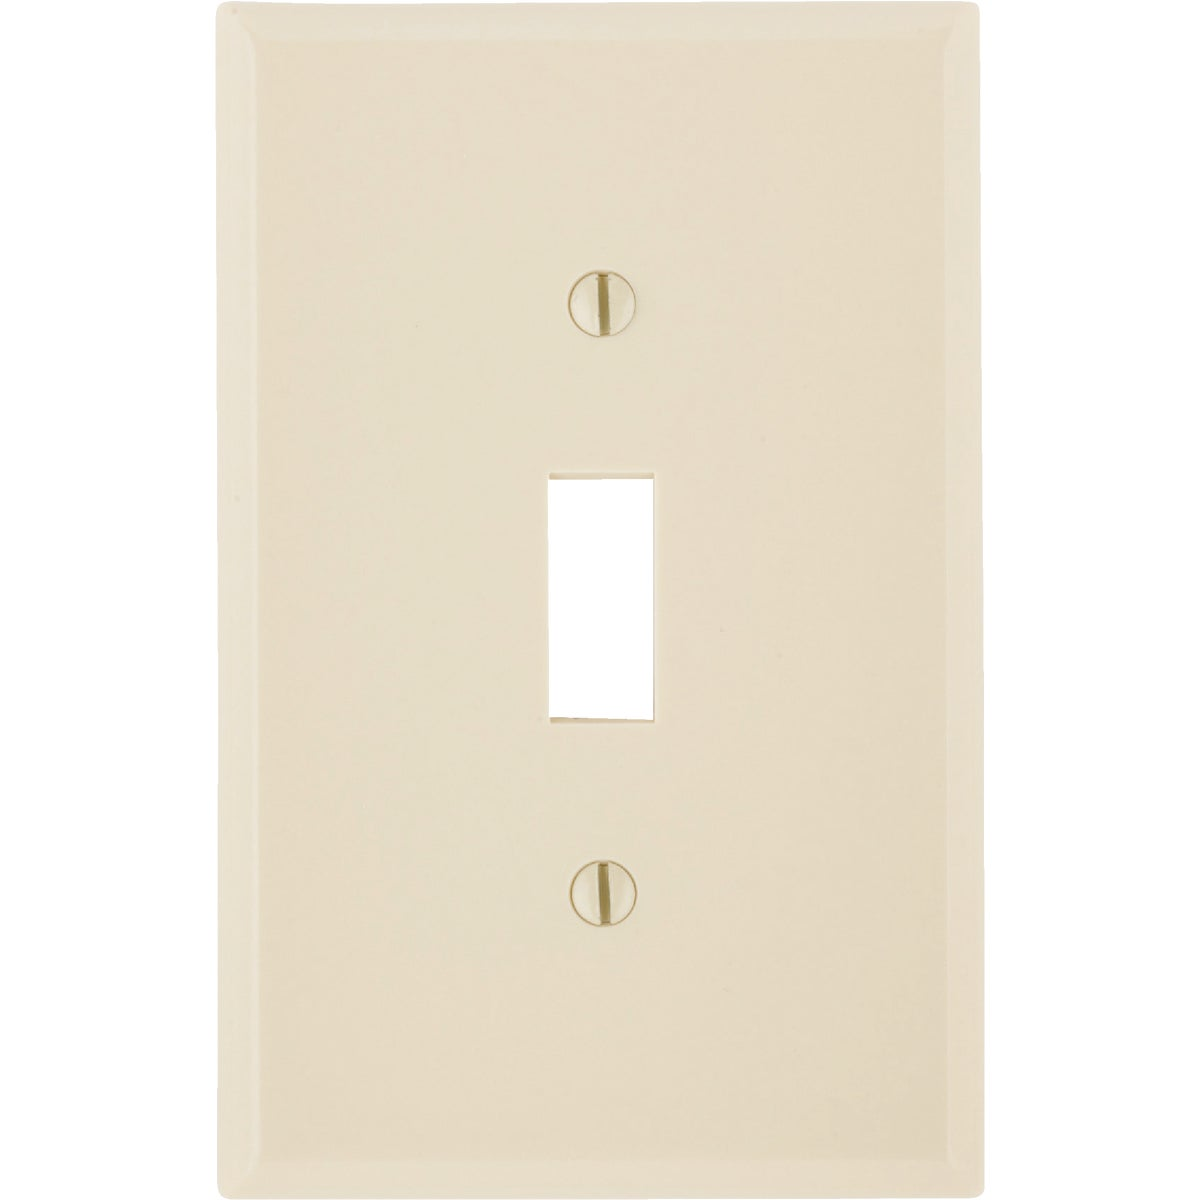 IV 1-TOGGLE WALL PLATE - 020-80501-I by Leviton Mfg Co